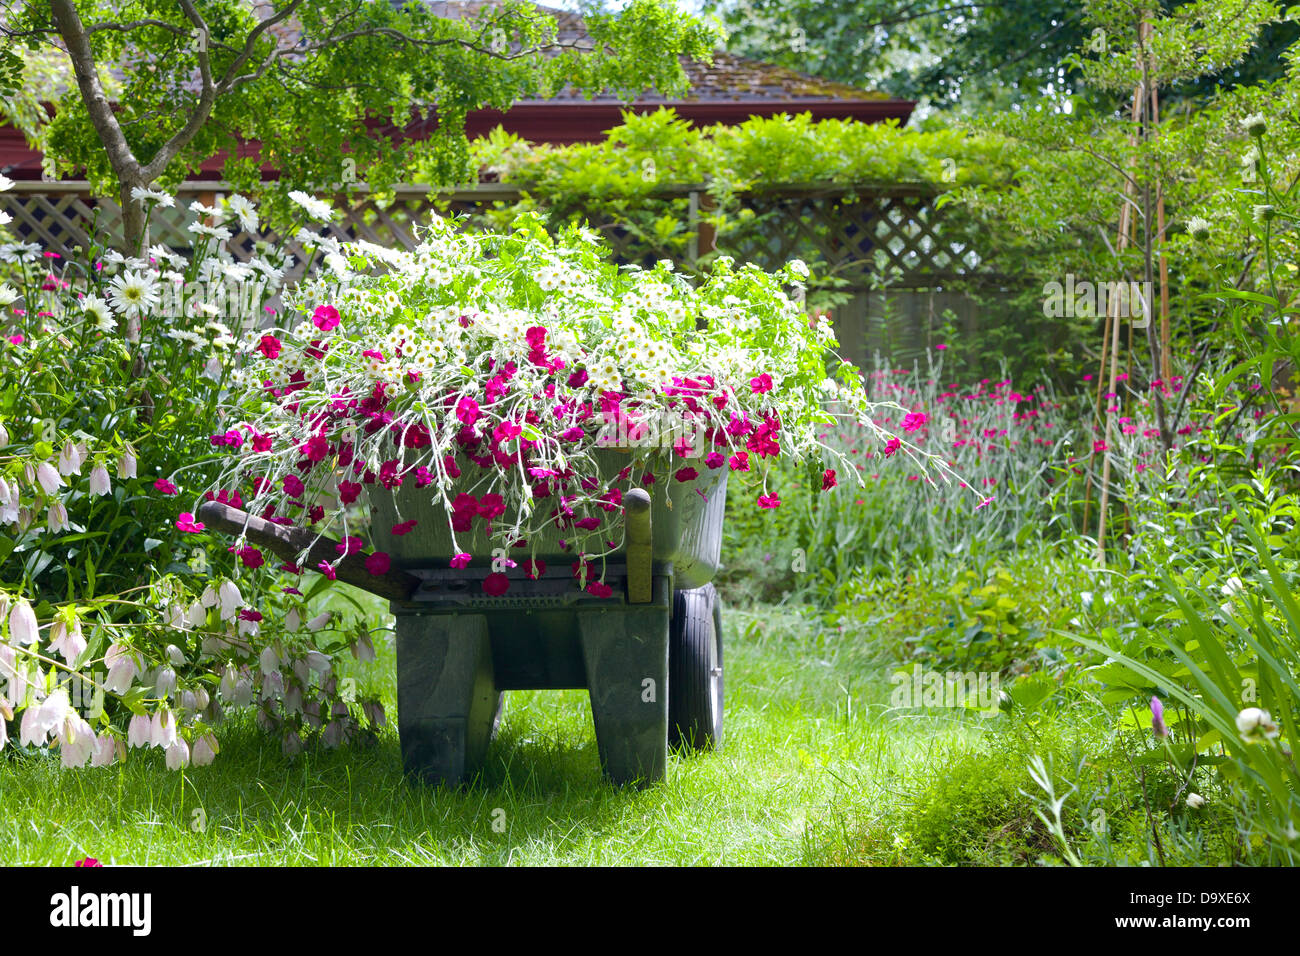 schubkarre voller blumen im garten stockfoto bild 57744930 alamy. Black Bedroom Furniture Sets. Home Design Ideas